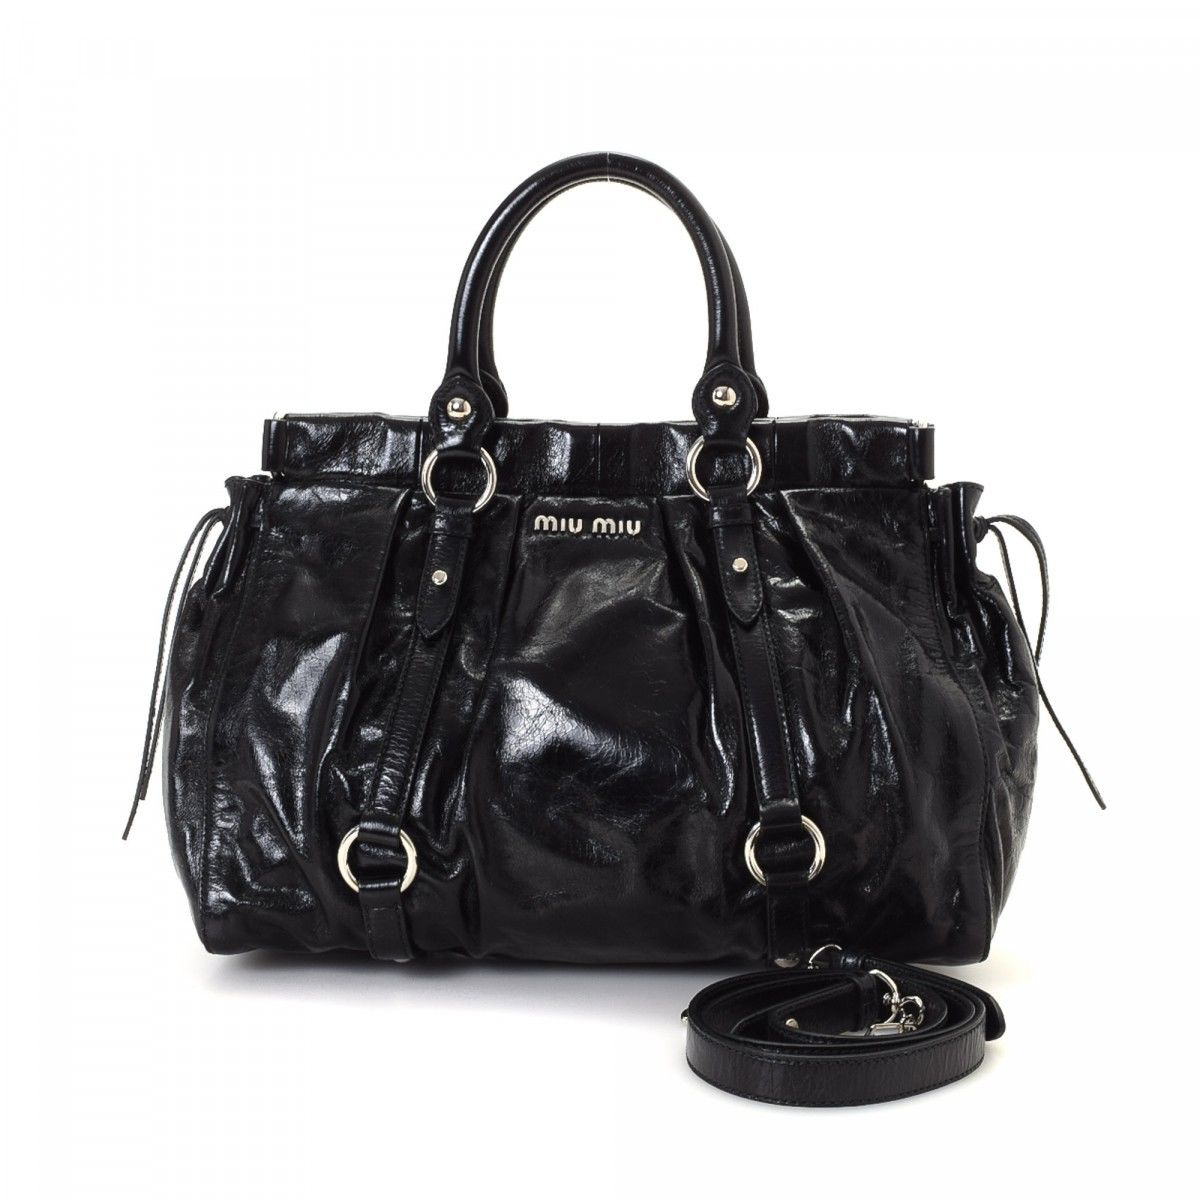 How To Clean My White Leather Handbag